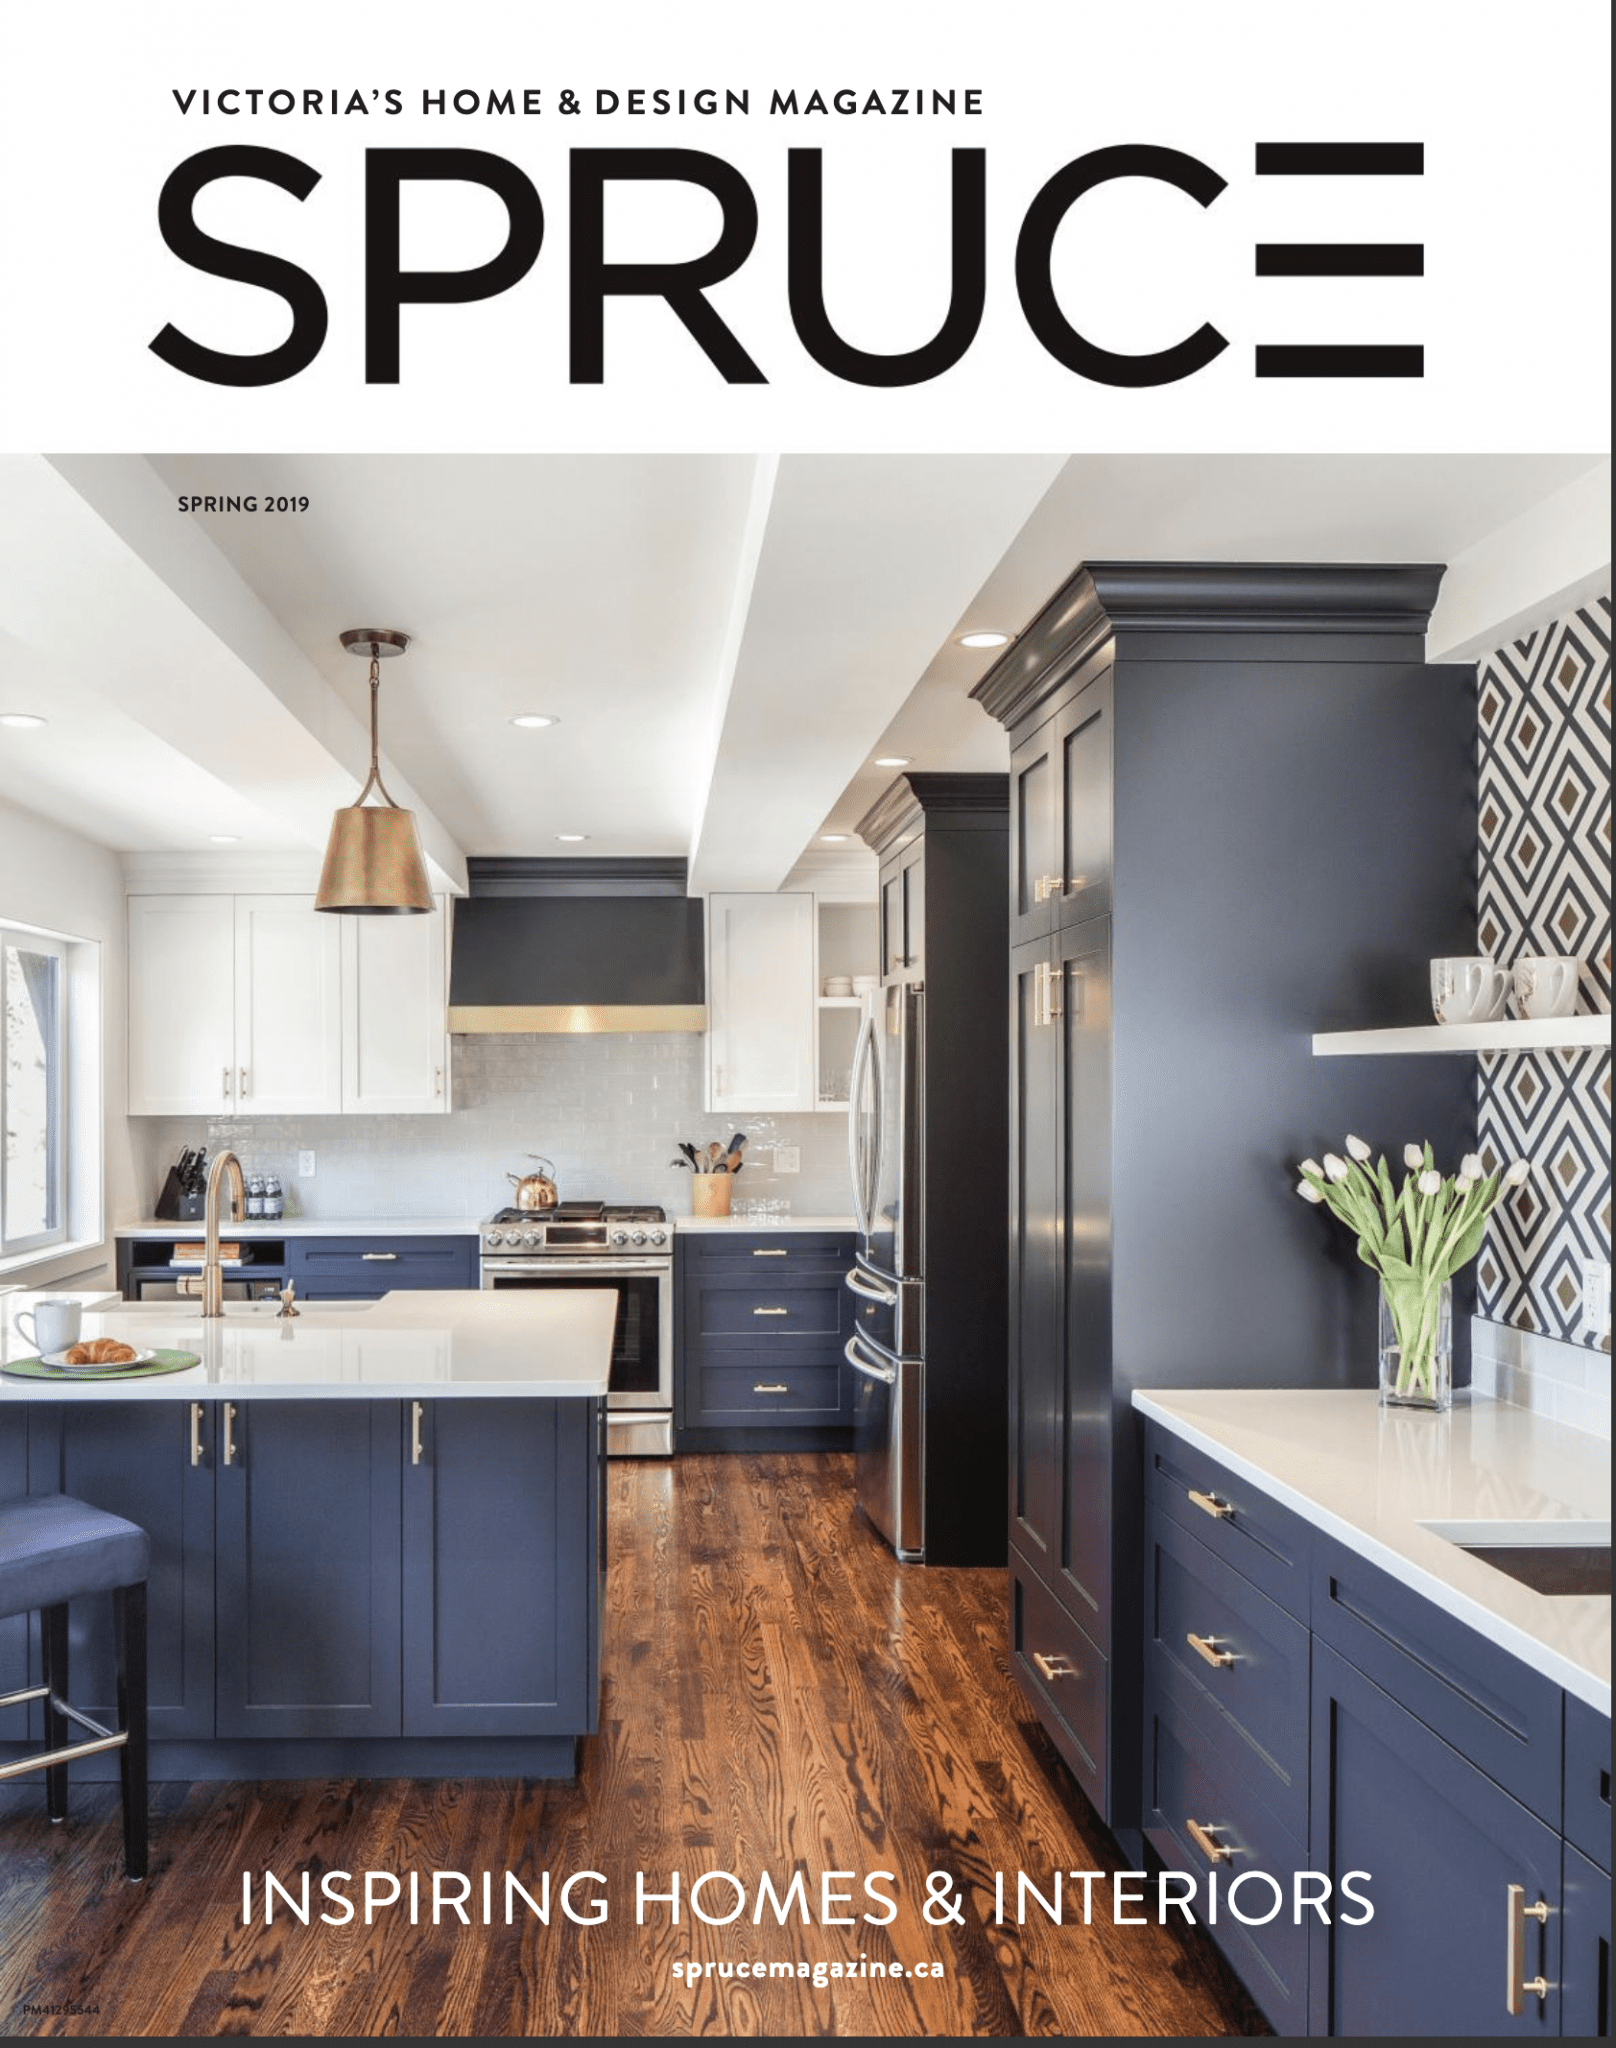 Spruce cover – Spring 2019